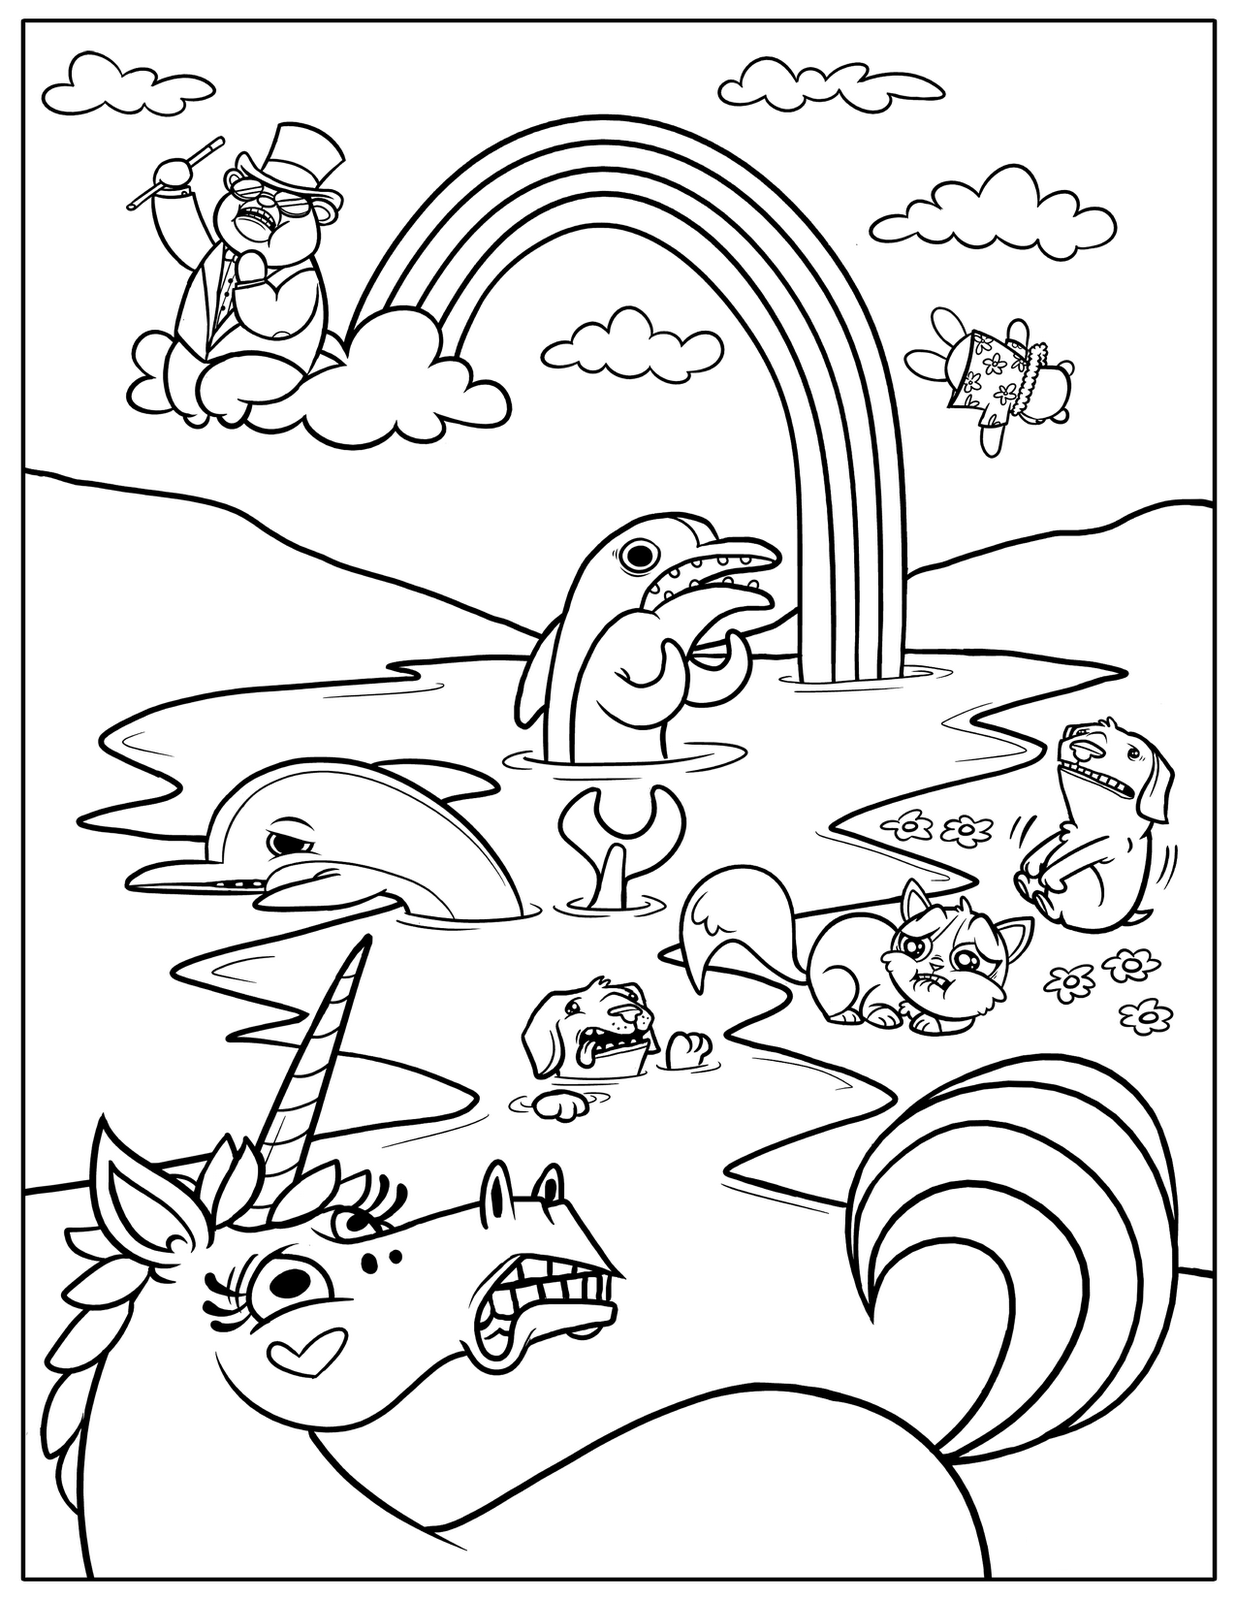 Worksheet Free Printables For Kids free printable rainbow coloring pages for kids printable